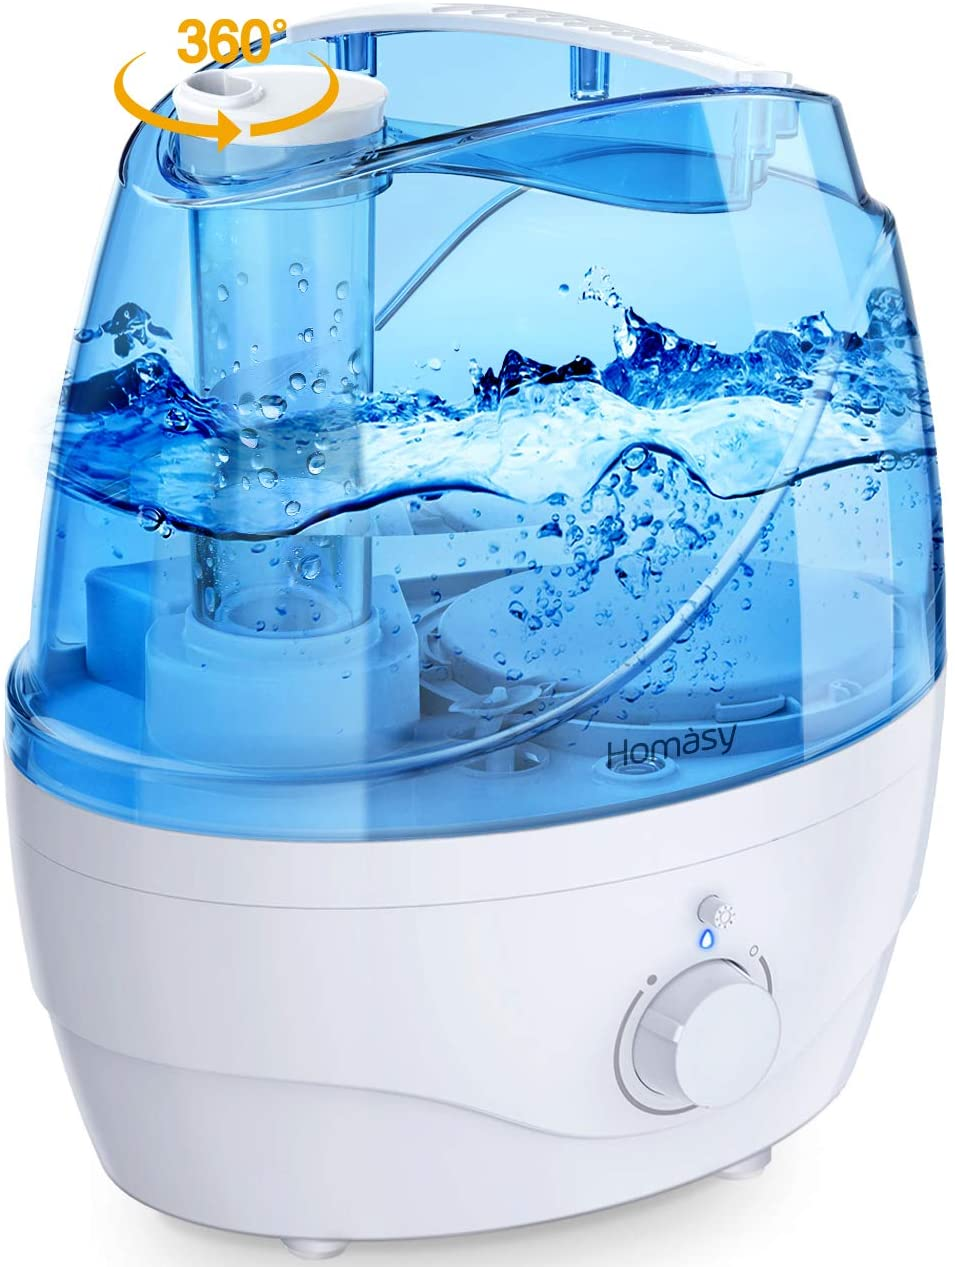 Homasy Cool Mist Best Baby Humidifiers